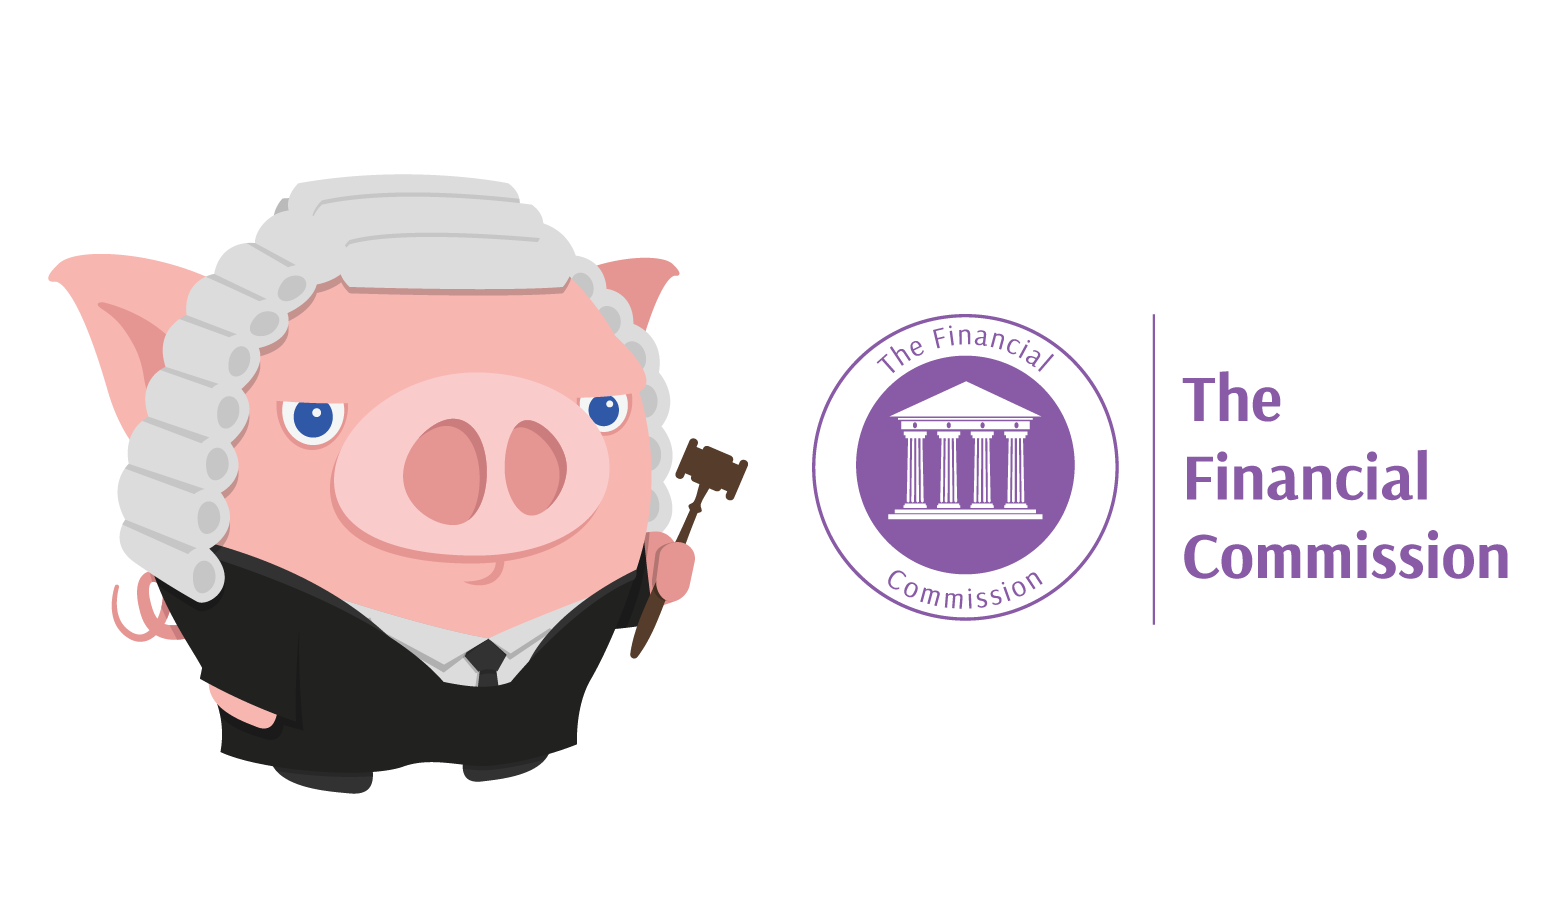 FX_regulation_Financial-Commission_FXPIG